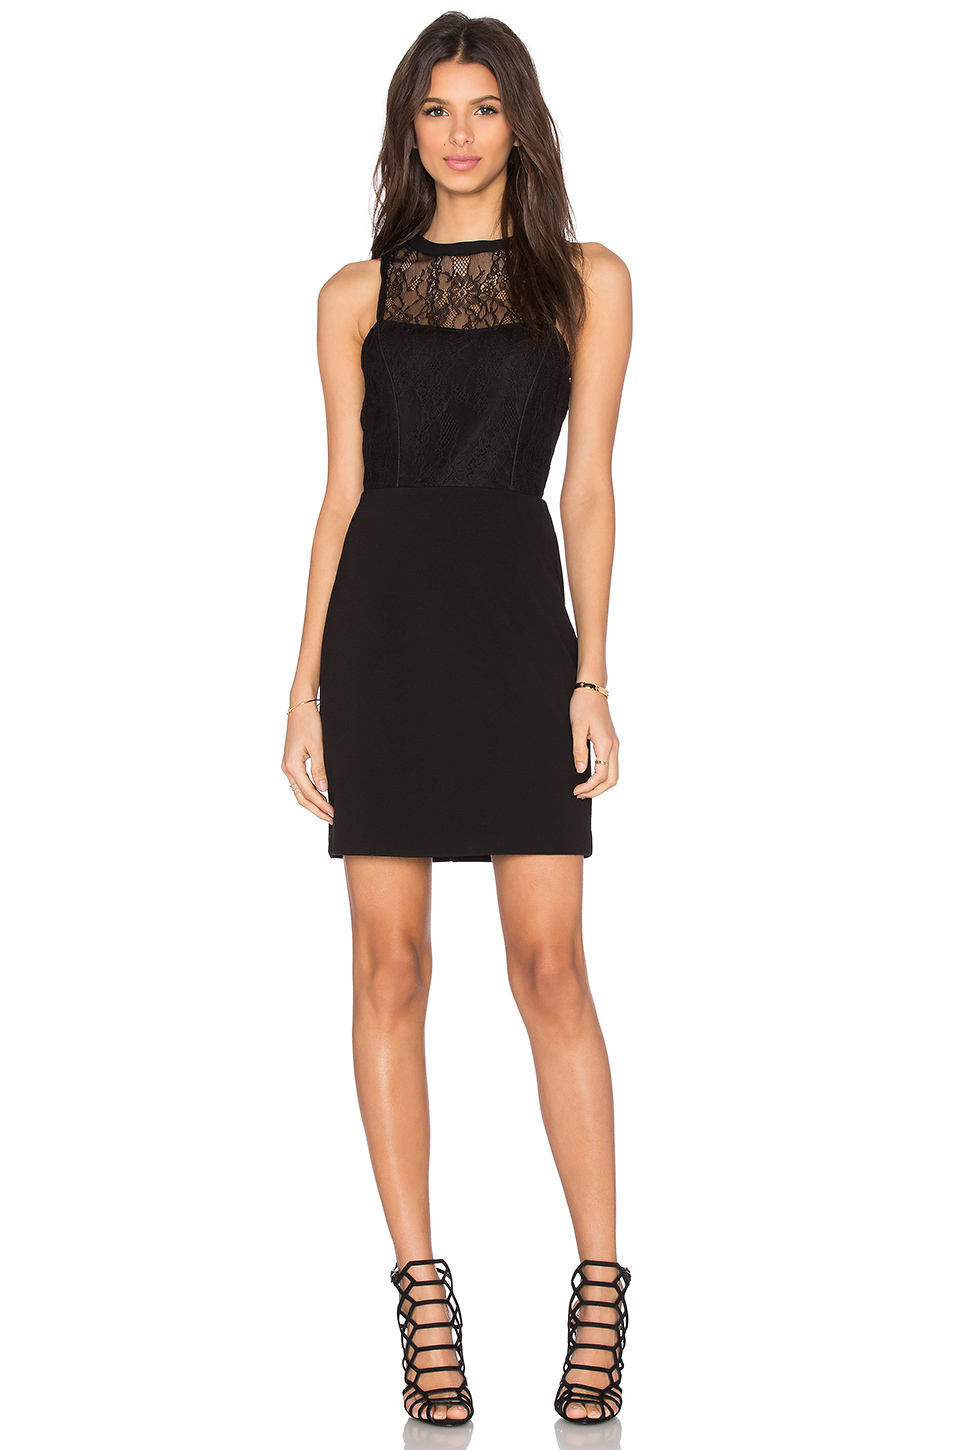 Sanctuary Black Dress